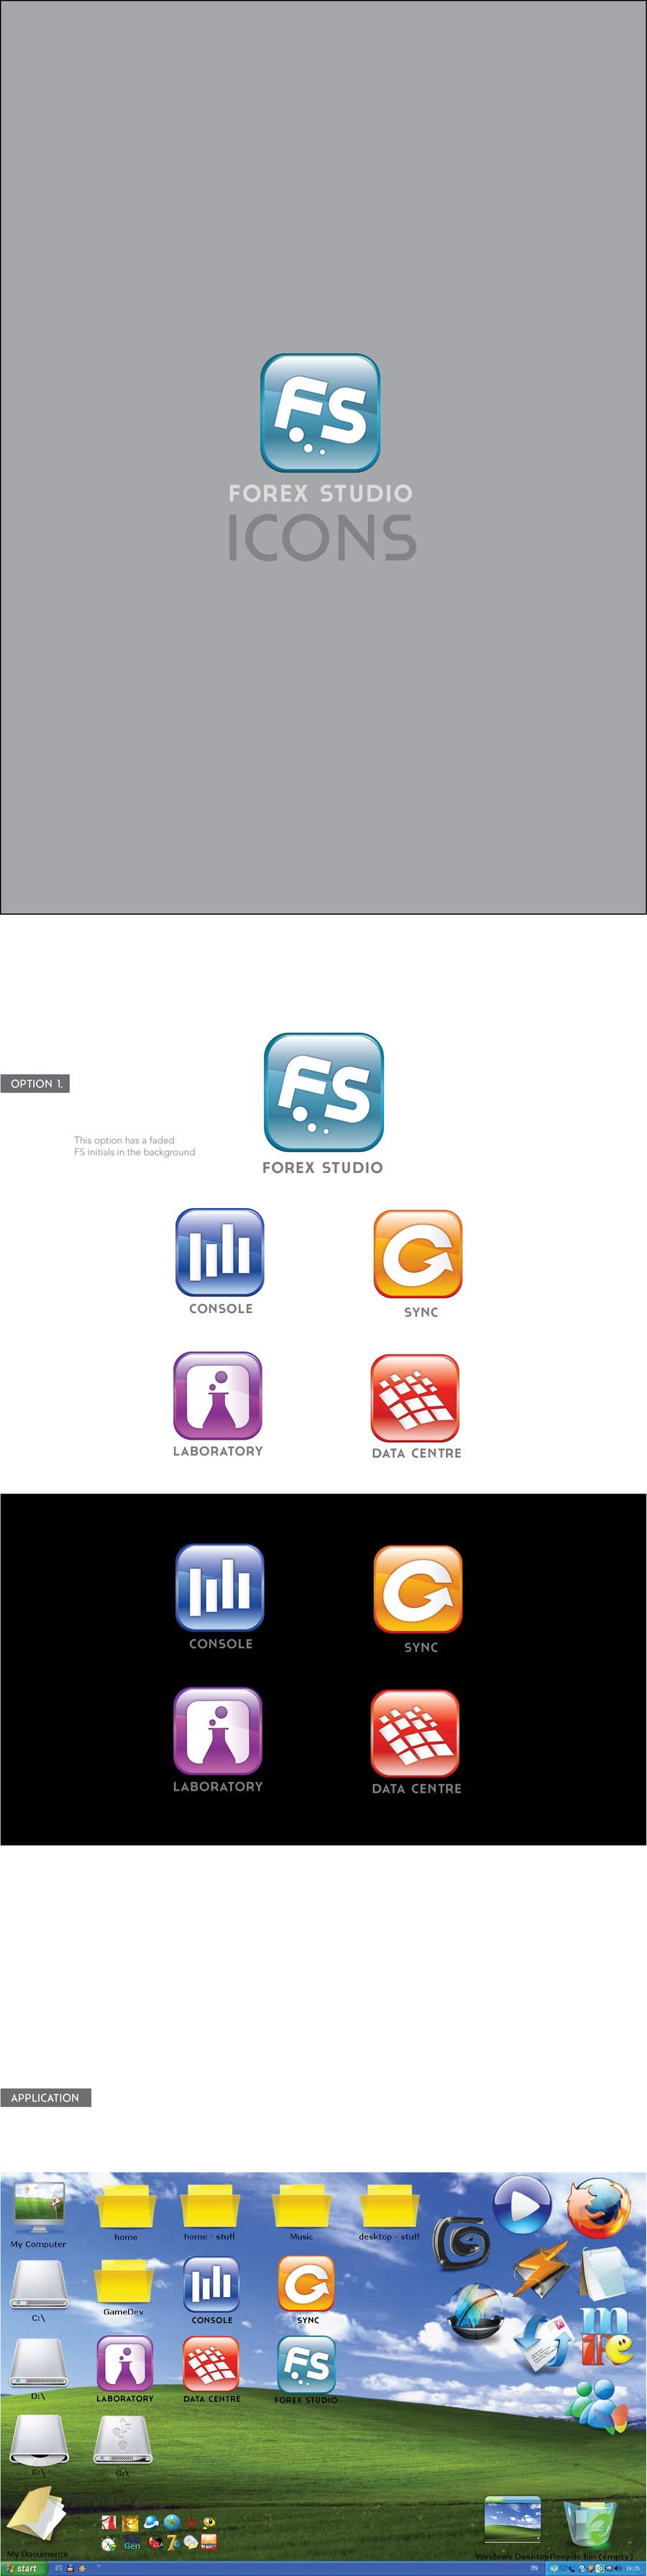 Proposition n°                                        40                                      du concours                                         Application Icons for Forex Studio (Windows software)